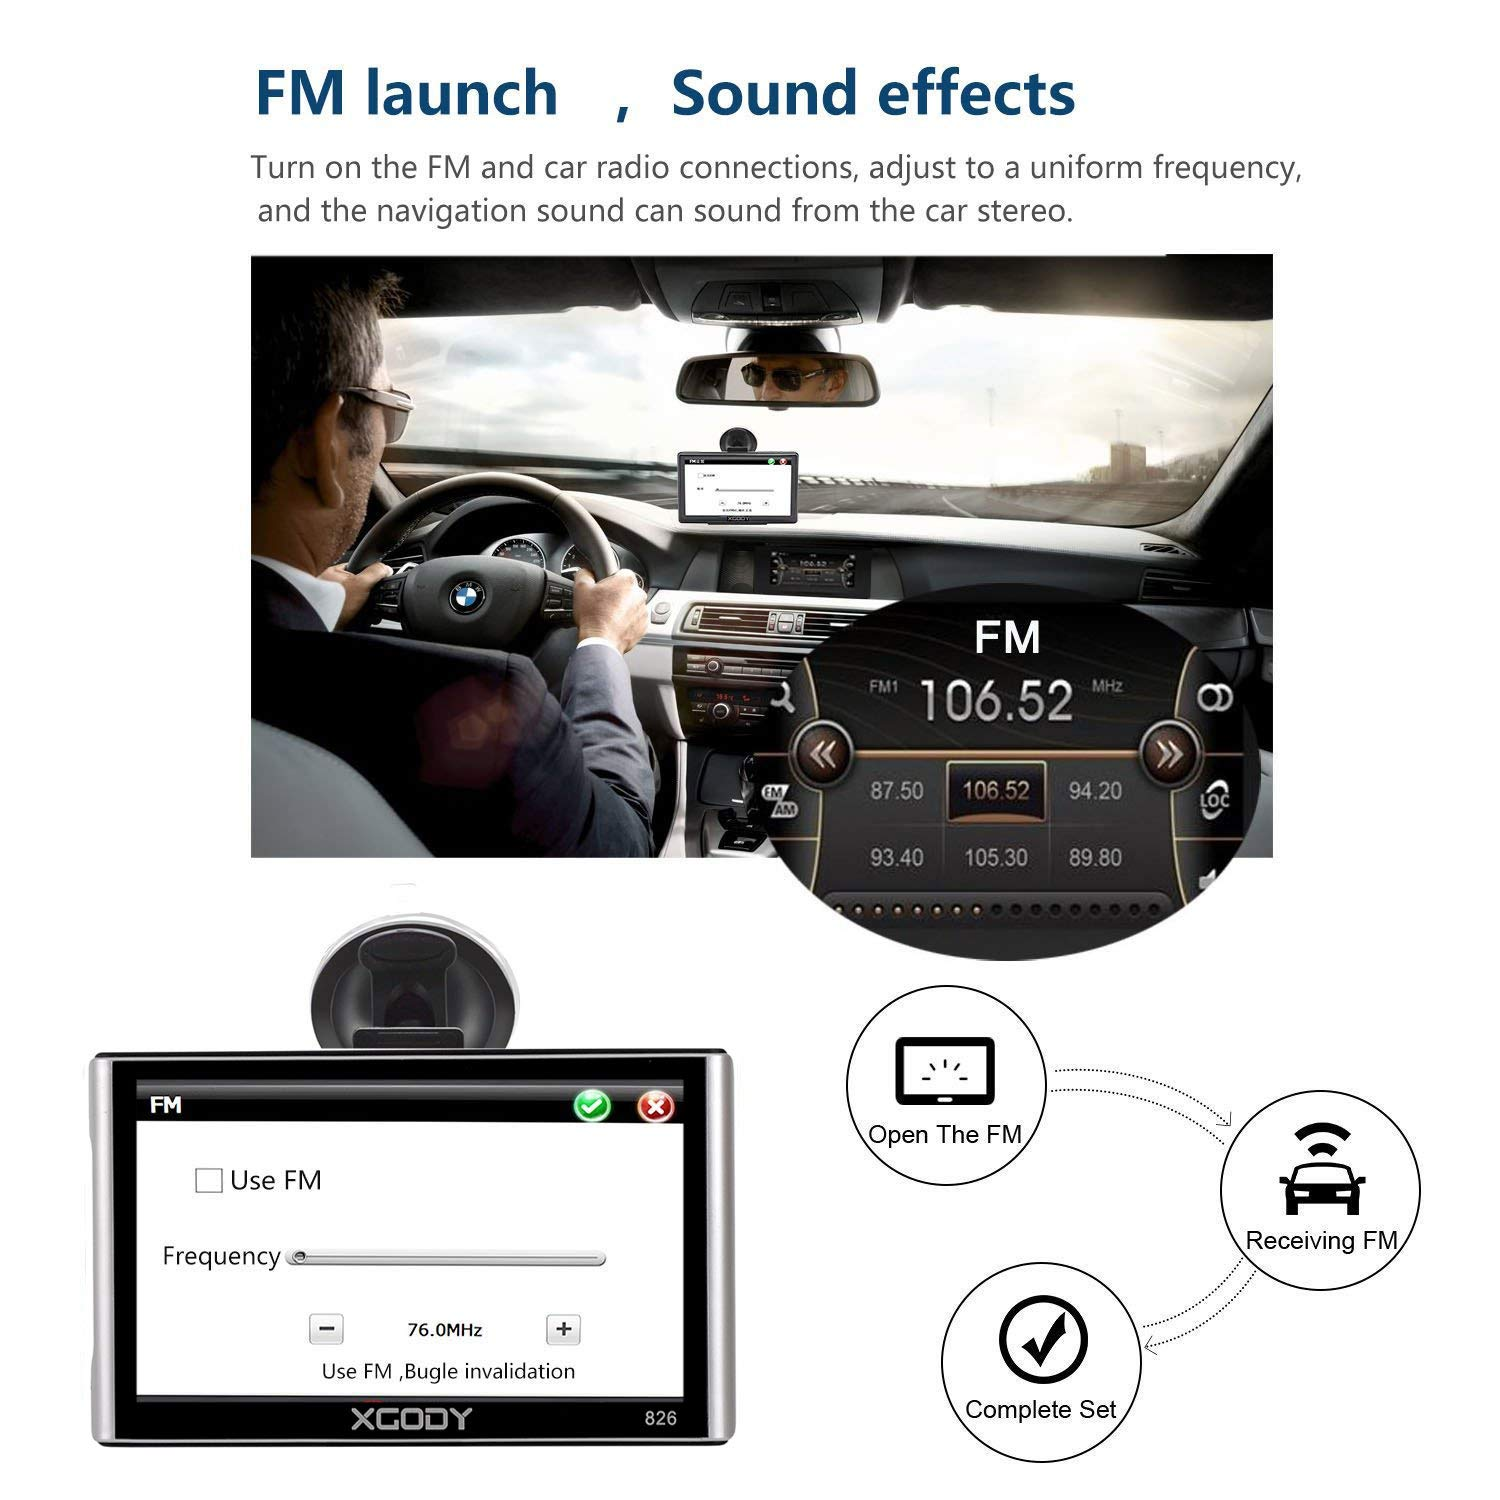 Xgody 826BT Car GPS Navigation with 6 Meters Backup Camera 7'' 256MB/8GB Sunshade Capacitive Touch Screen Trucking GPS NAV Lifetime Map Updates Speed Limit Displays Spoken Turn-by-Turn Directions by XGODY (Image #8)